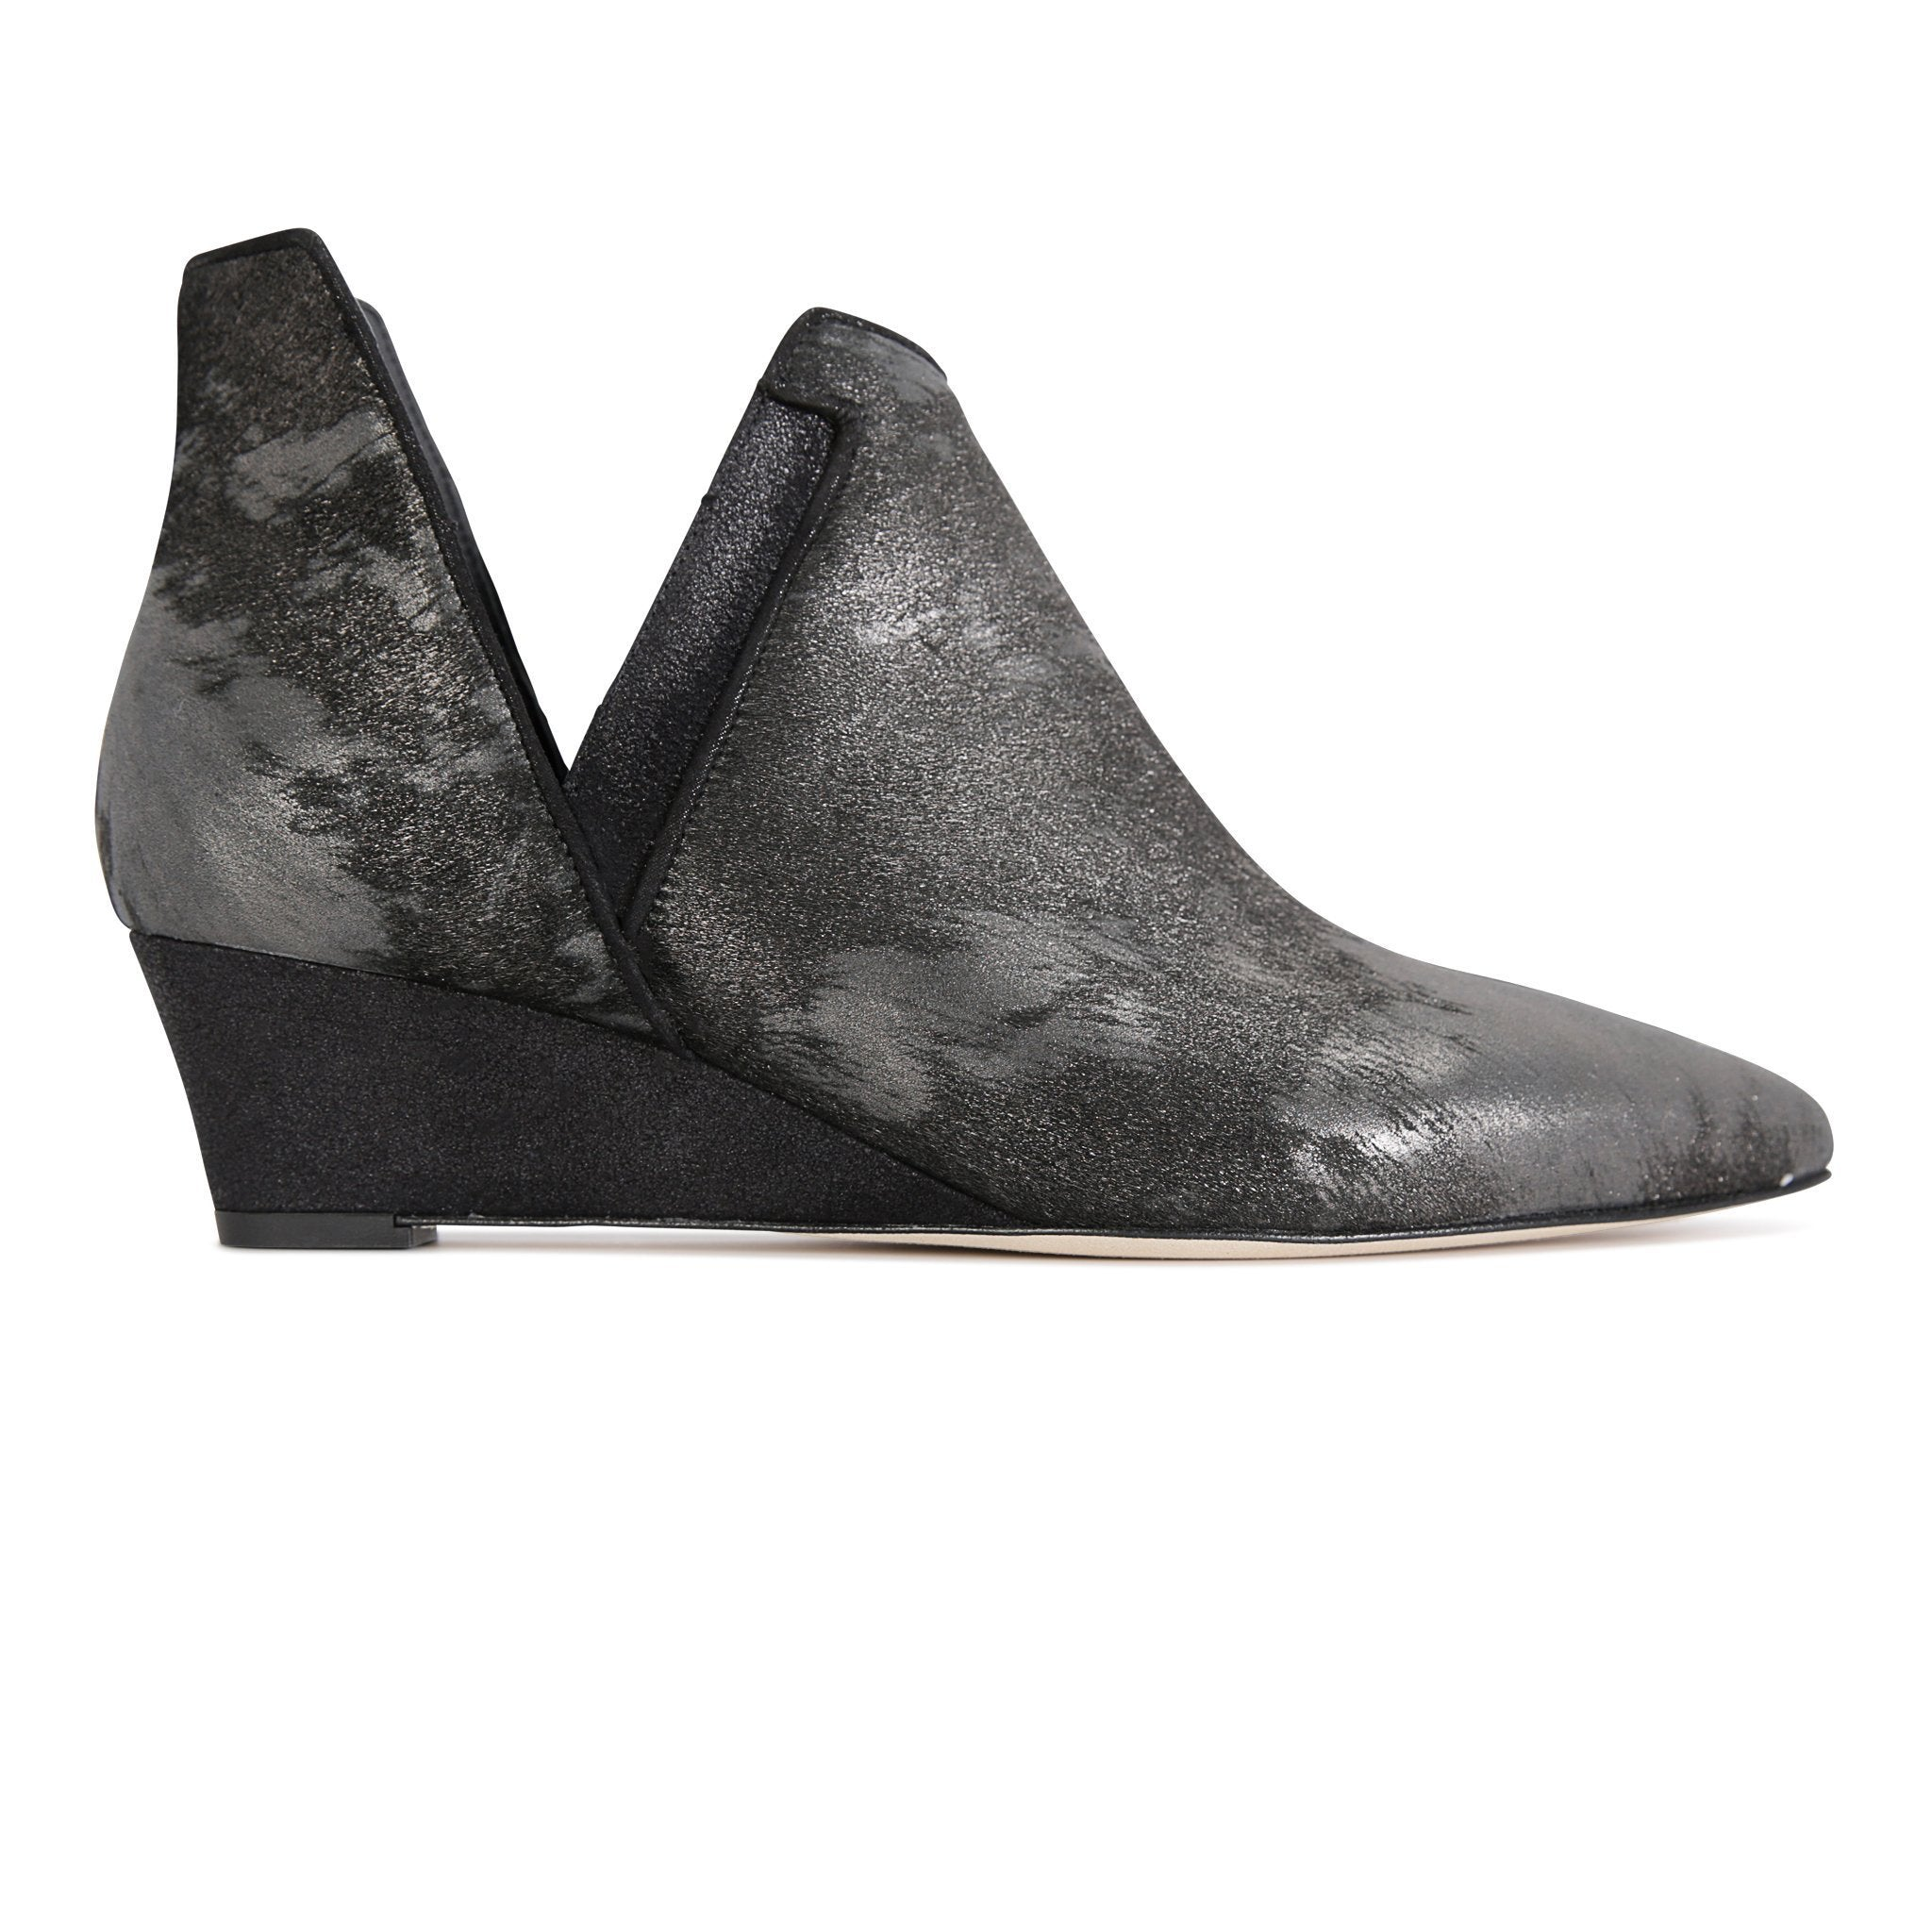 SYRENE - Calf Hair Vintage Nero + Burma Nero, VIAJIYU - Women's Hand Made Sustainable Luxury Shoes. Made in Italy. Made to Order.